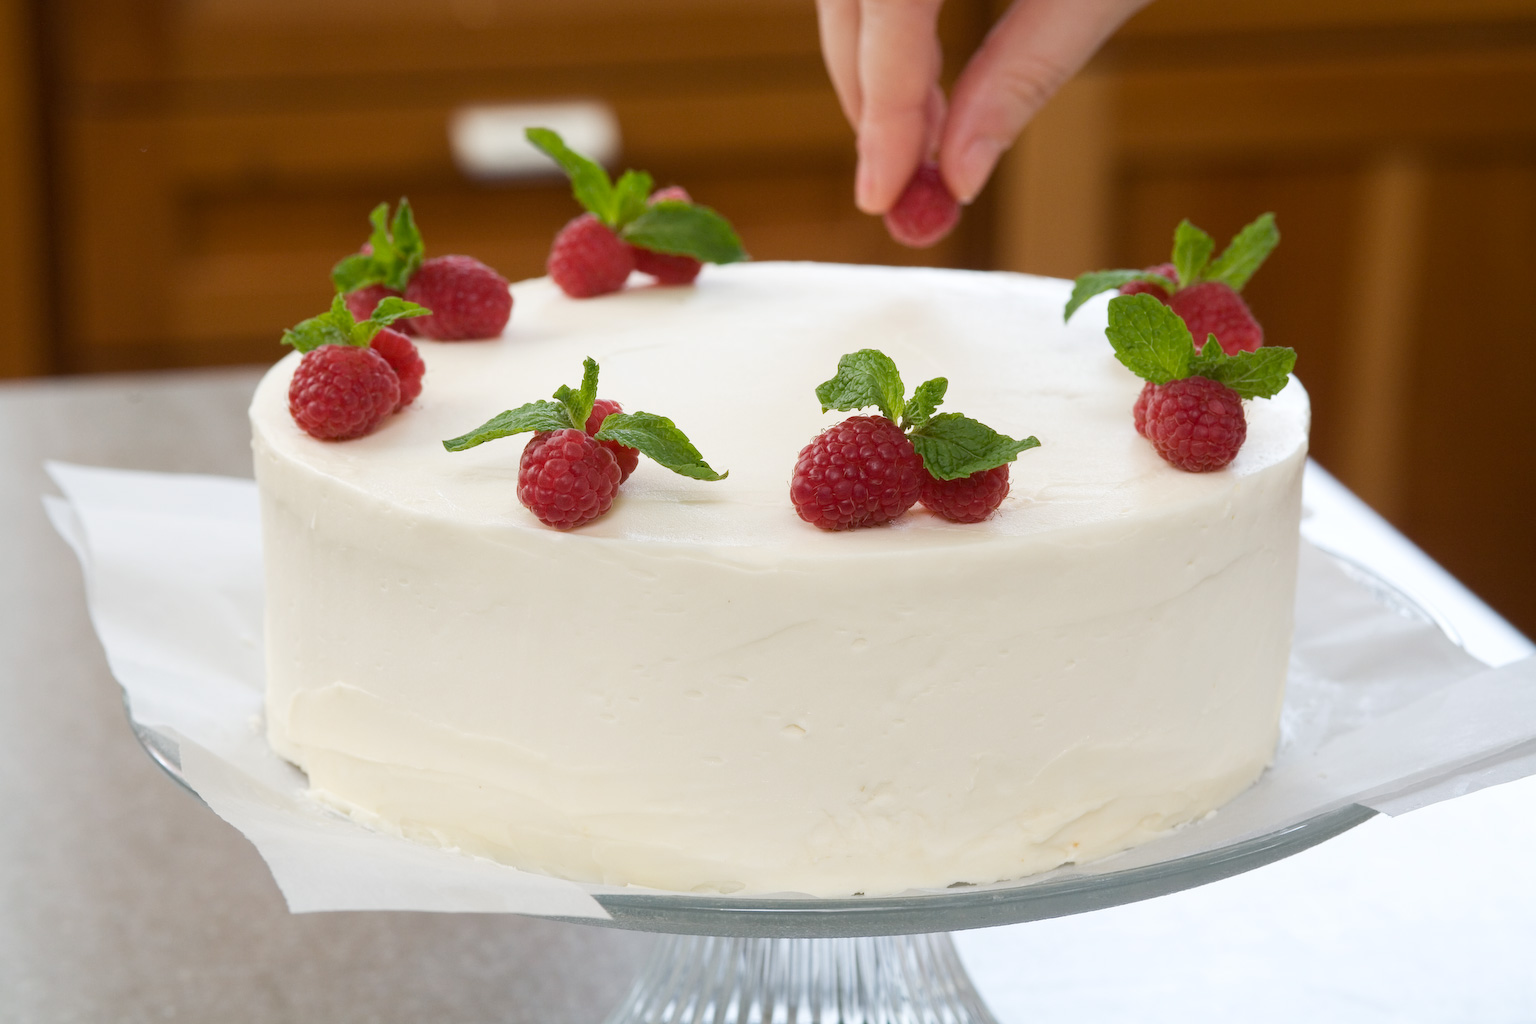 Decorate Cake With Fruit And Nuts